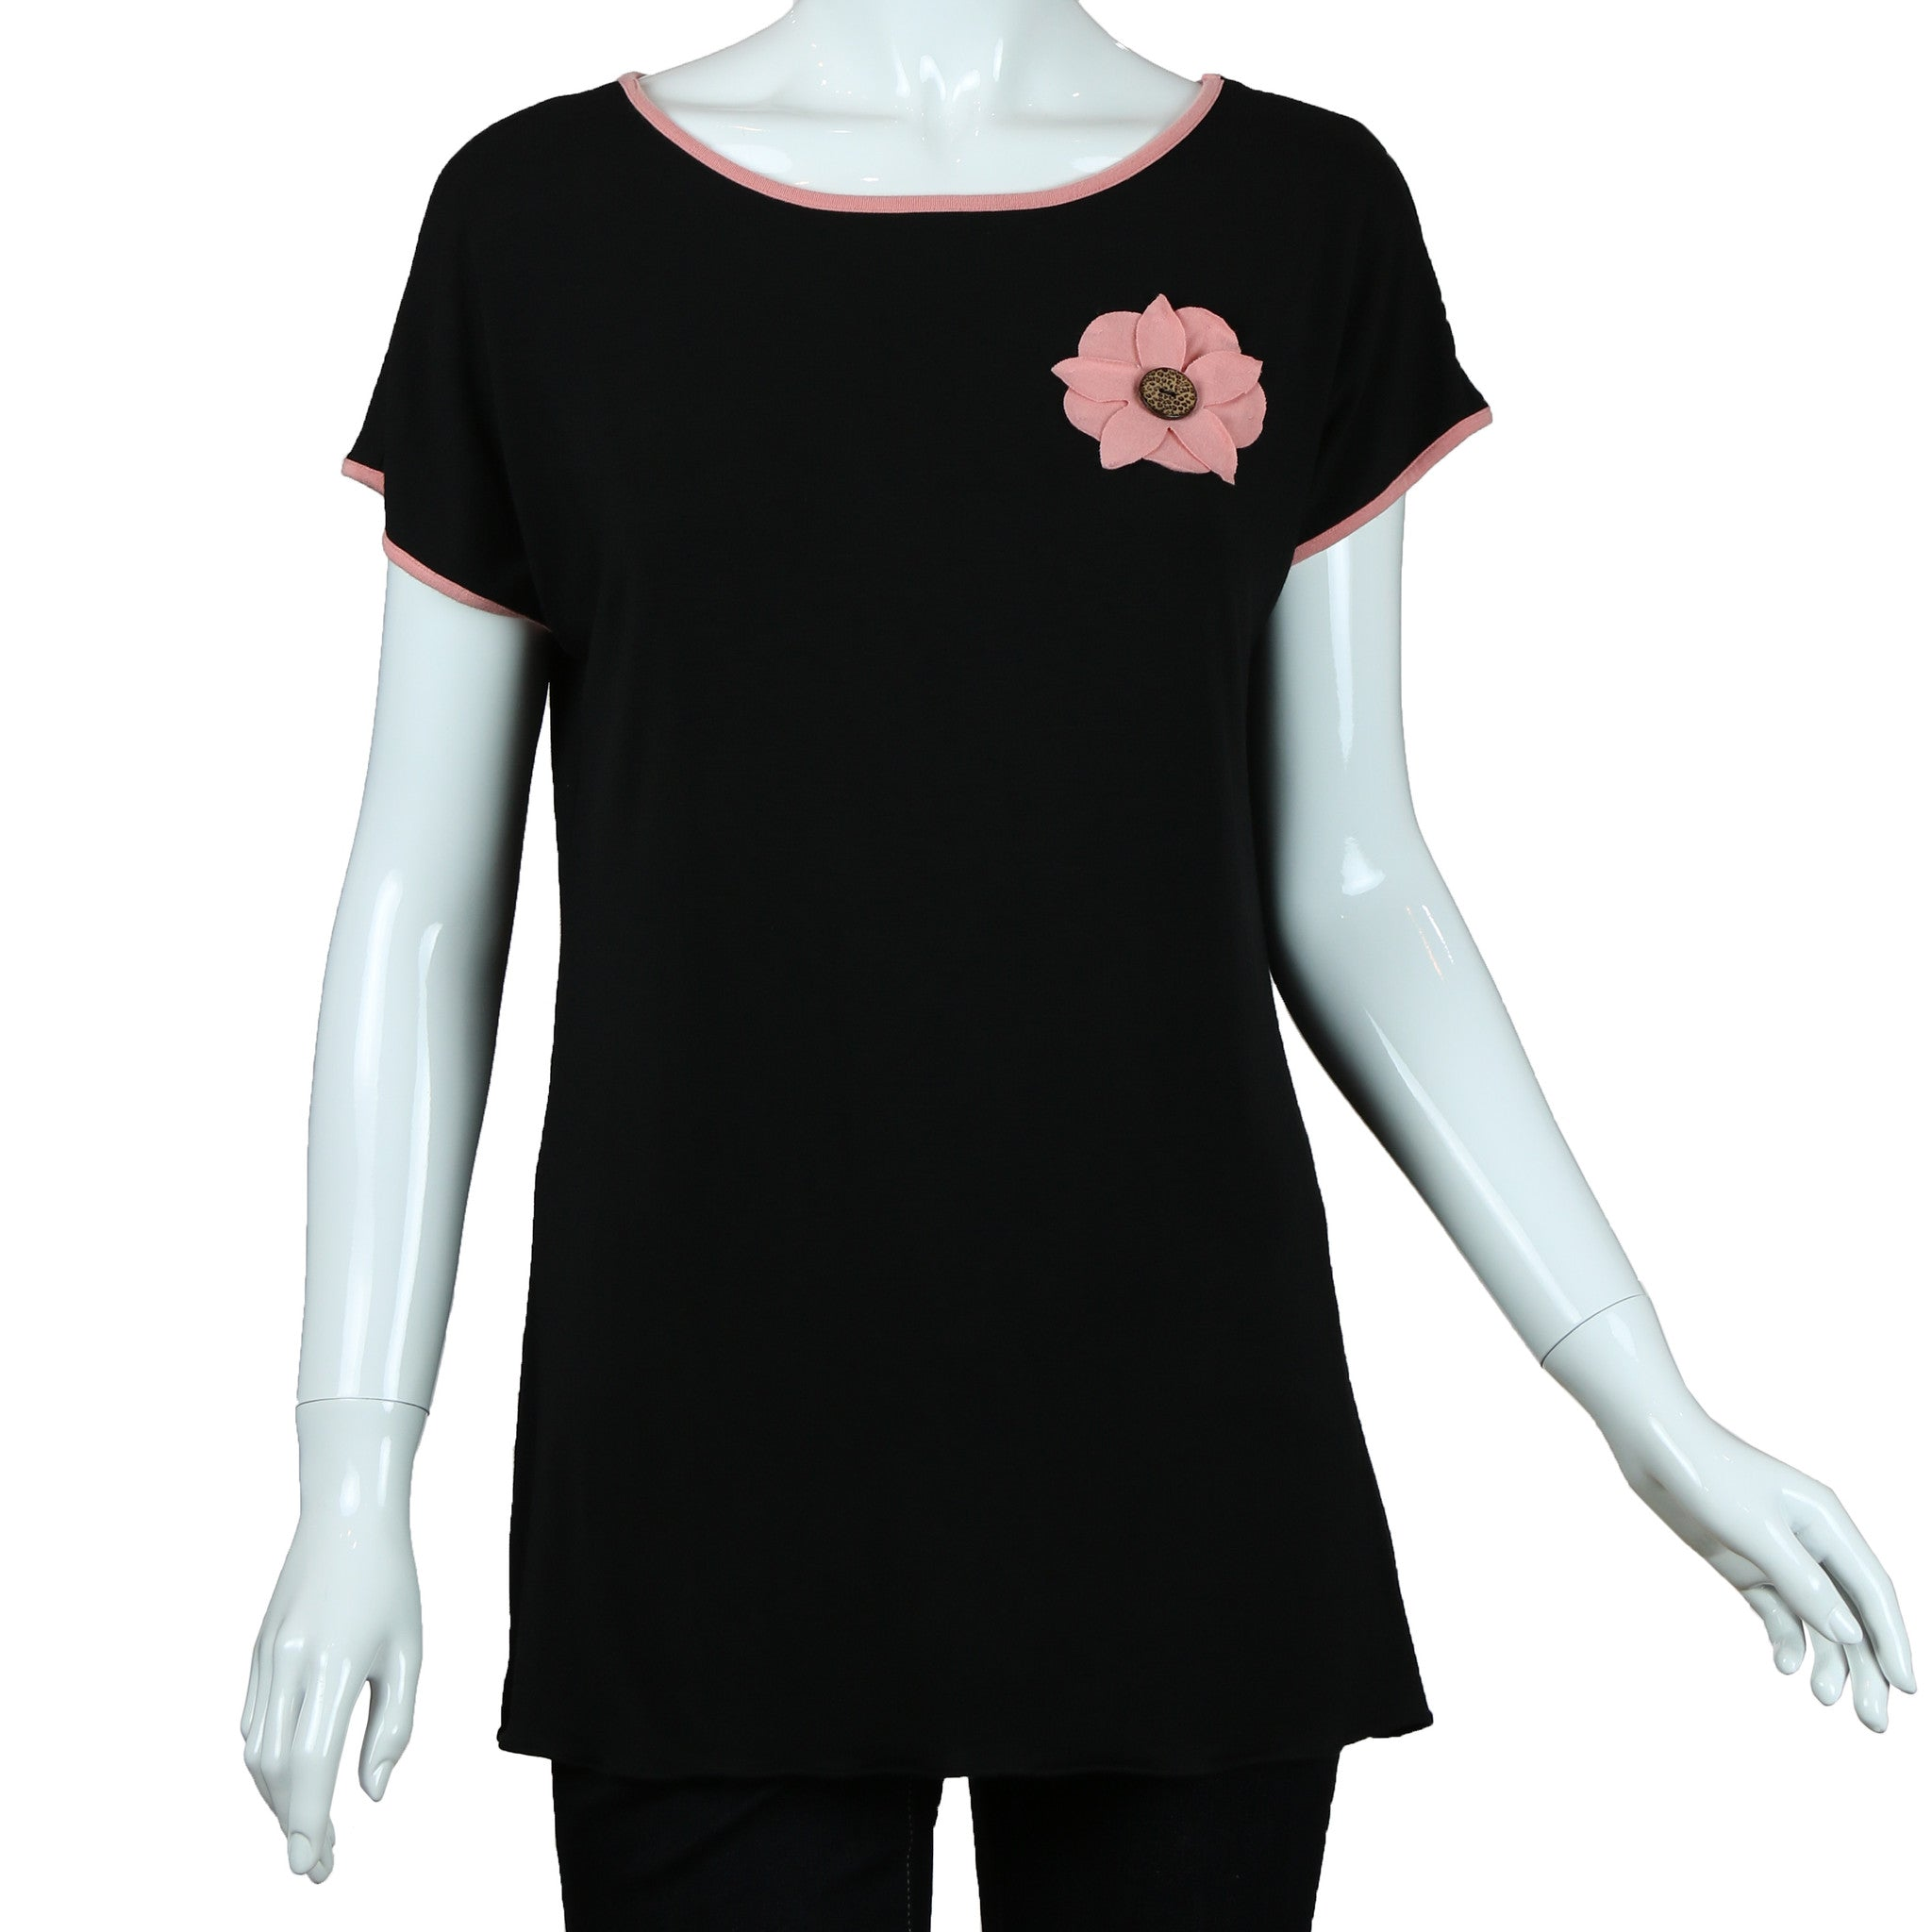 Cap Sleeve Top With Flower By Carole Wang Trendsetter Boutique